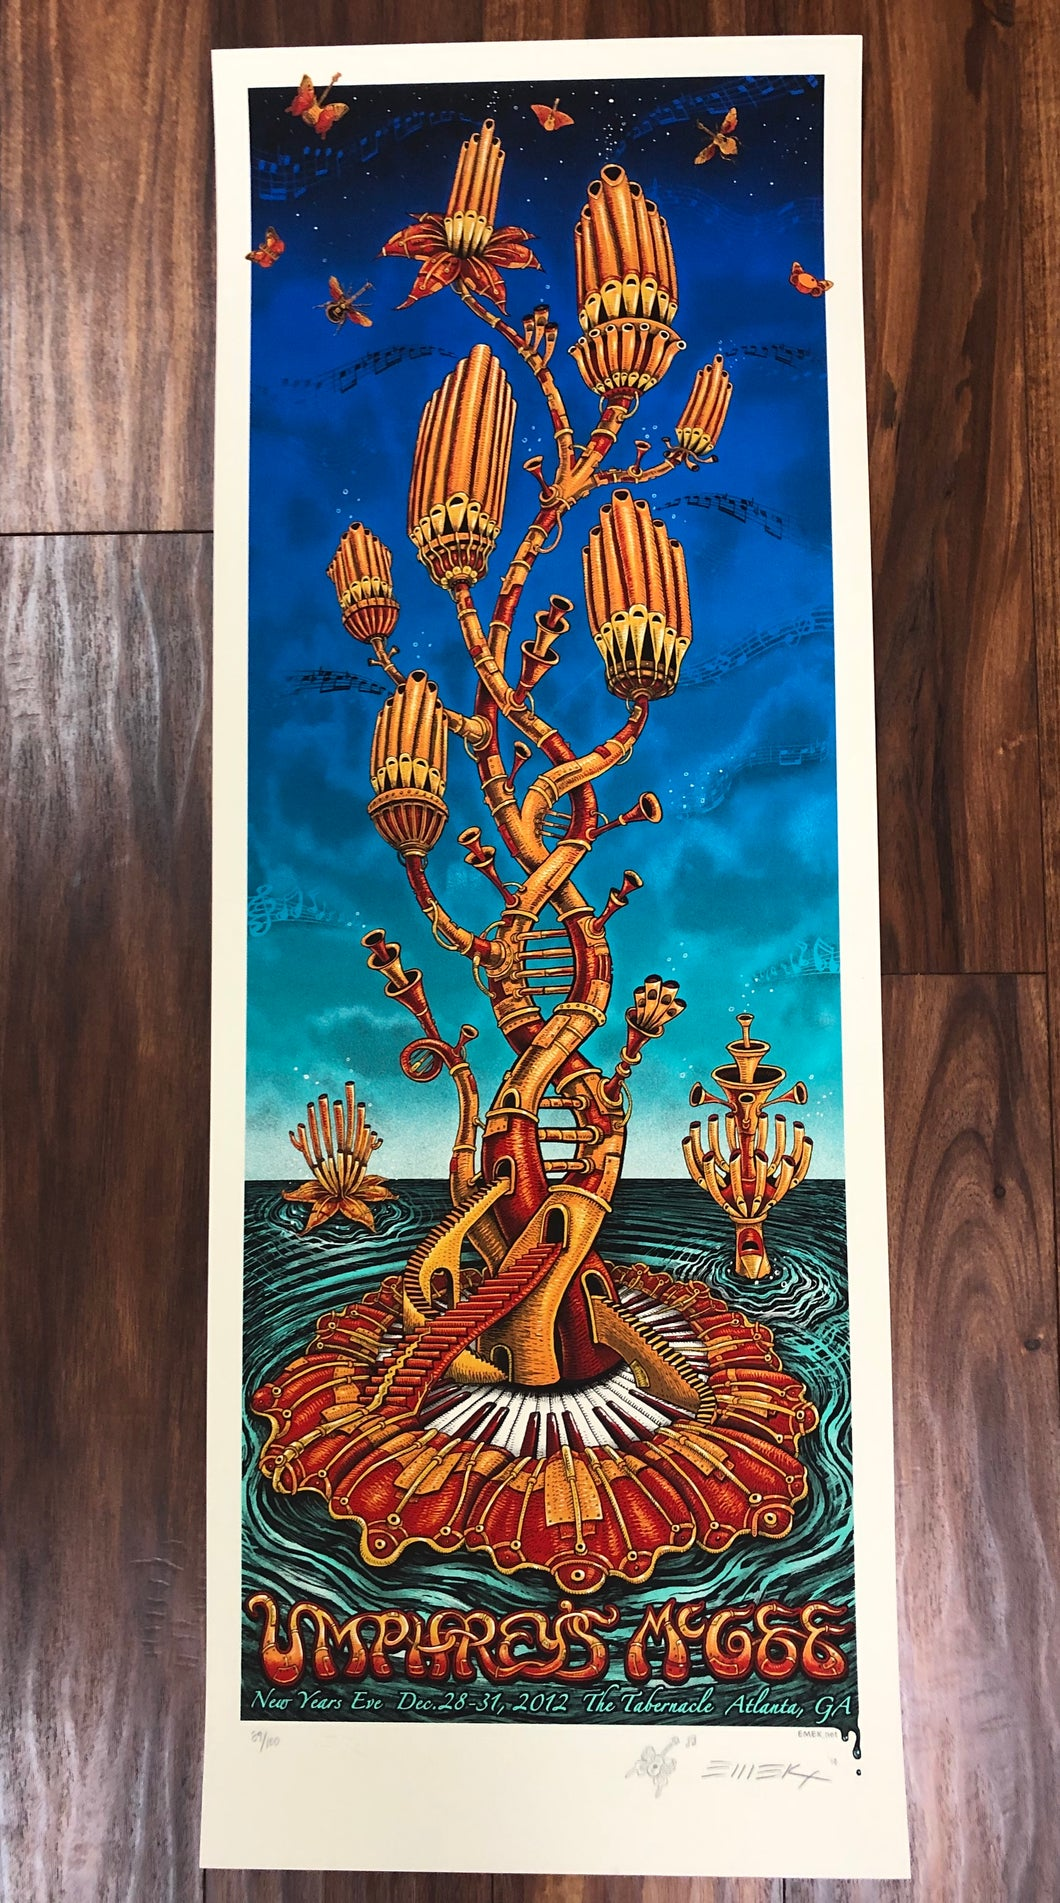 Umphrey's McGee Atlanta by EMEK - AP Edition